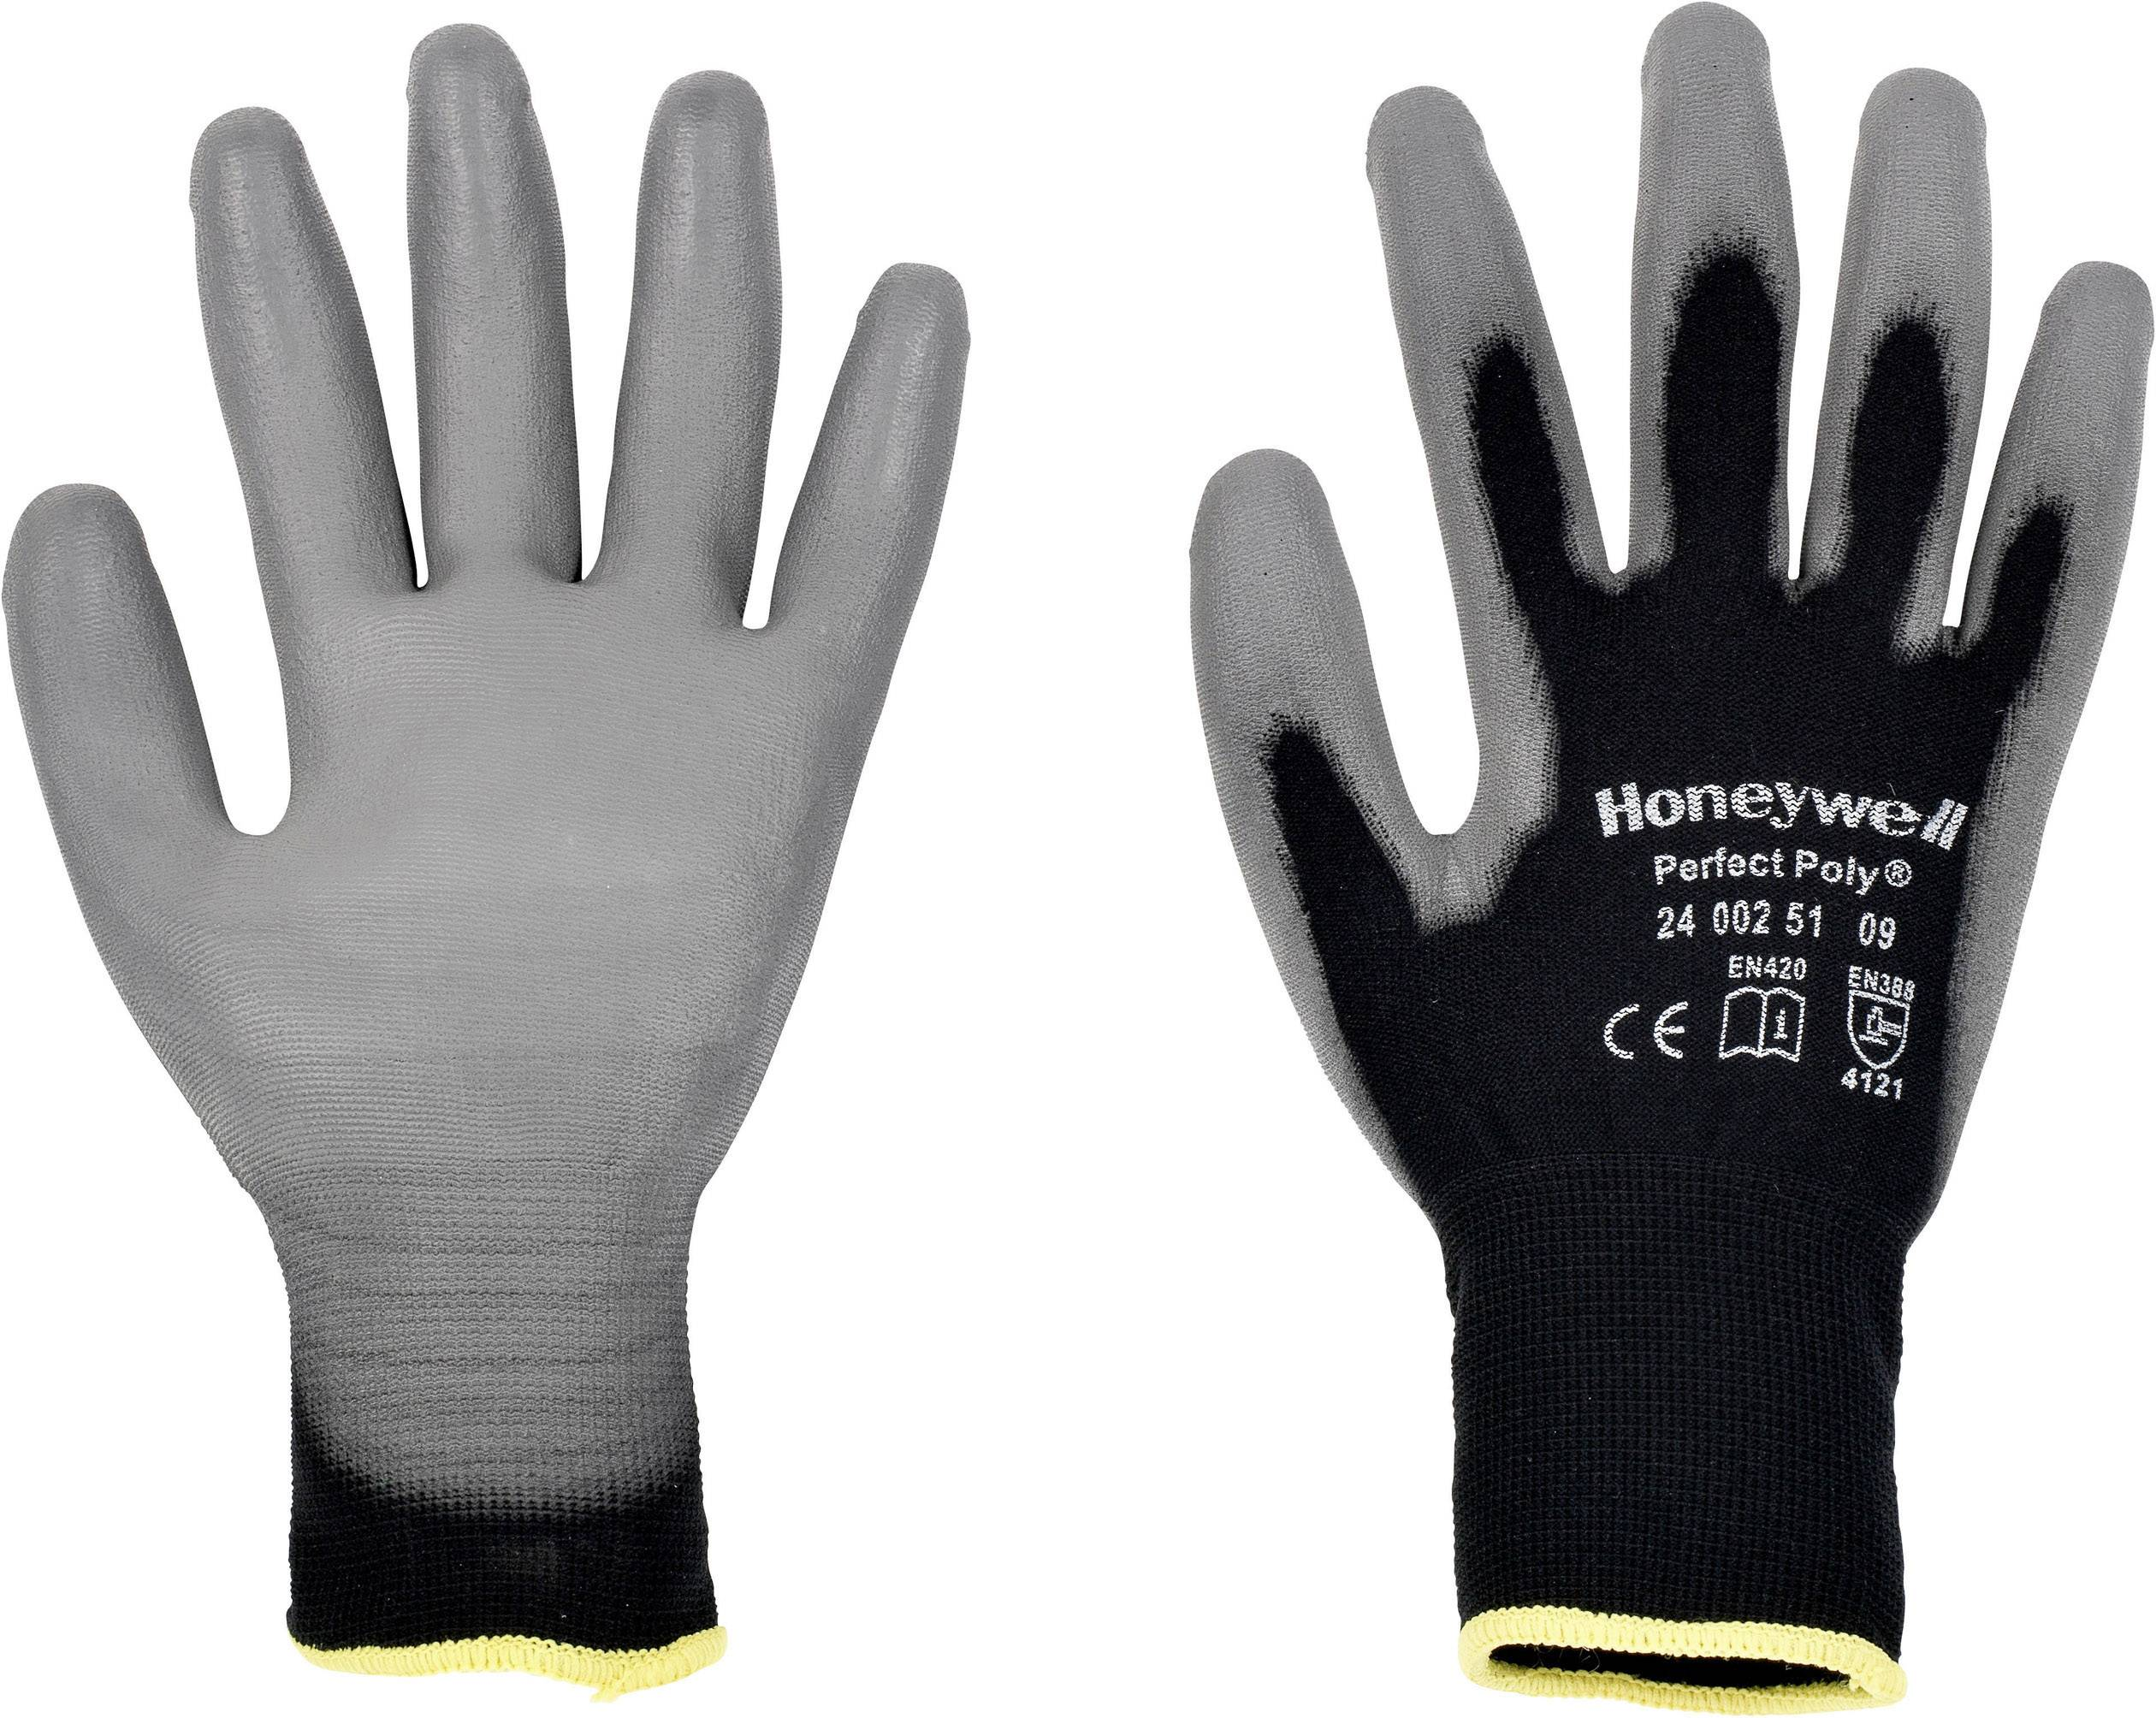 Pracovné rukavice Perfect Fit GANTS NOIRS PERFECTPOLY 2400251, velikost rukavic: 9, L